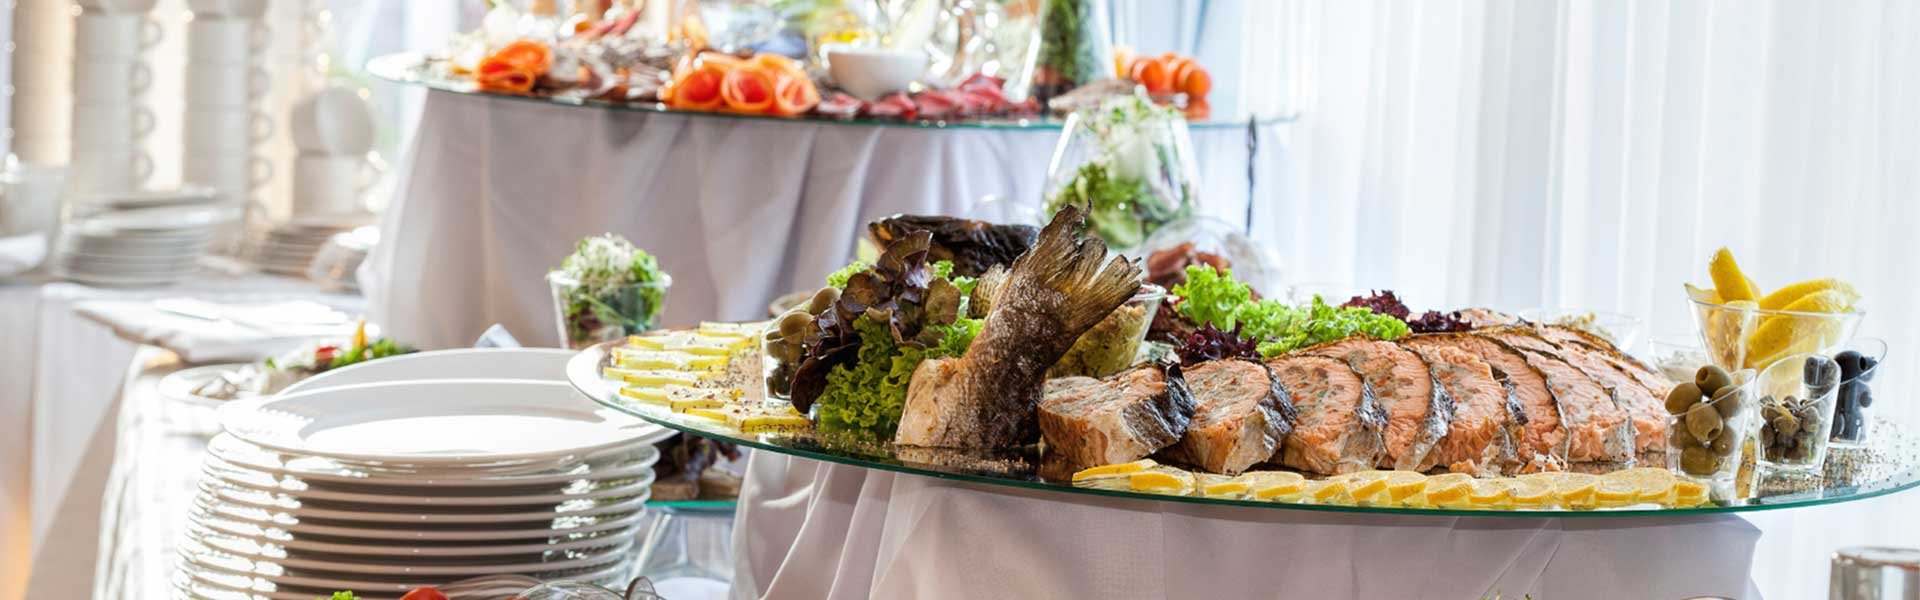 Food Station Catering image